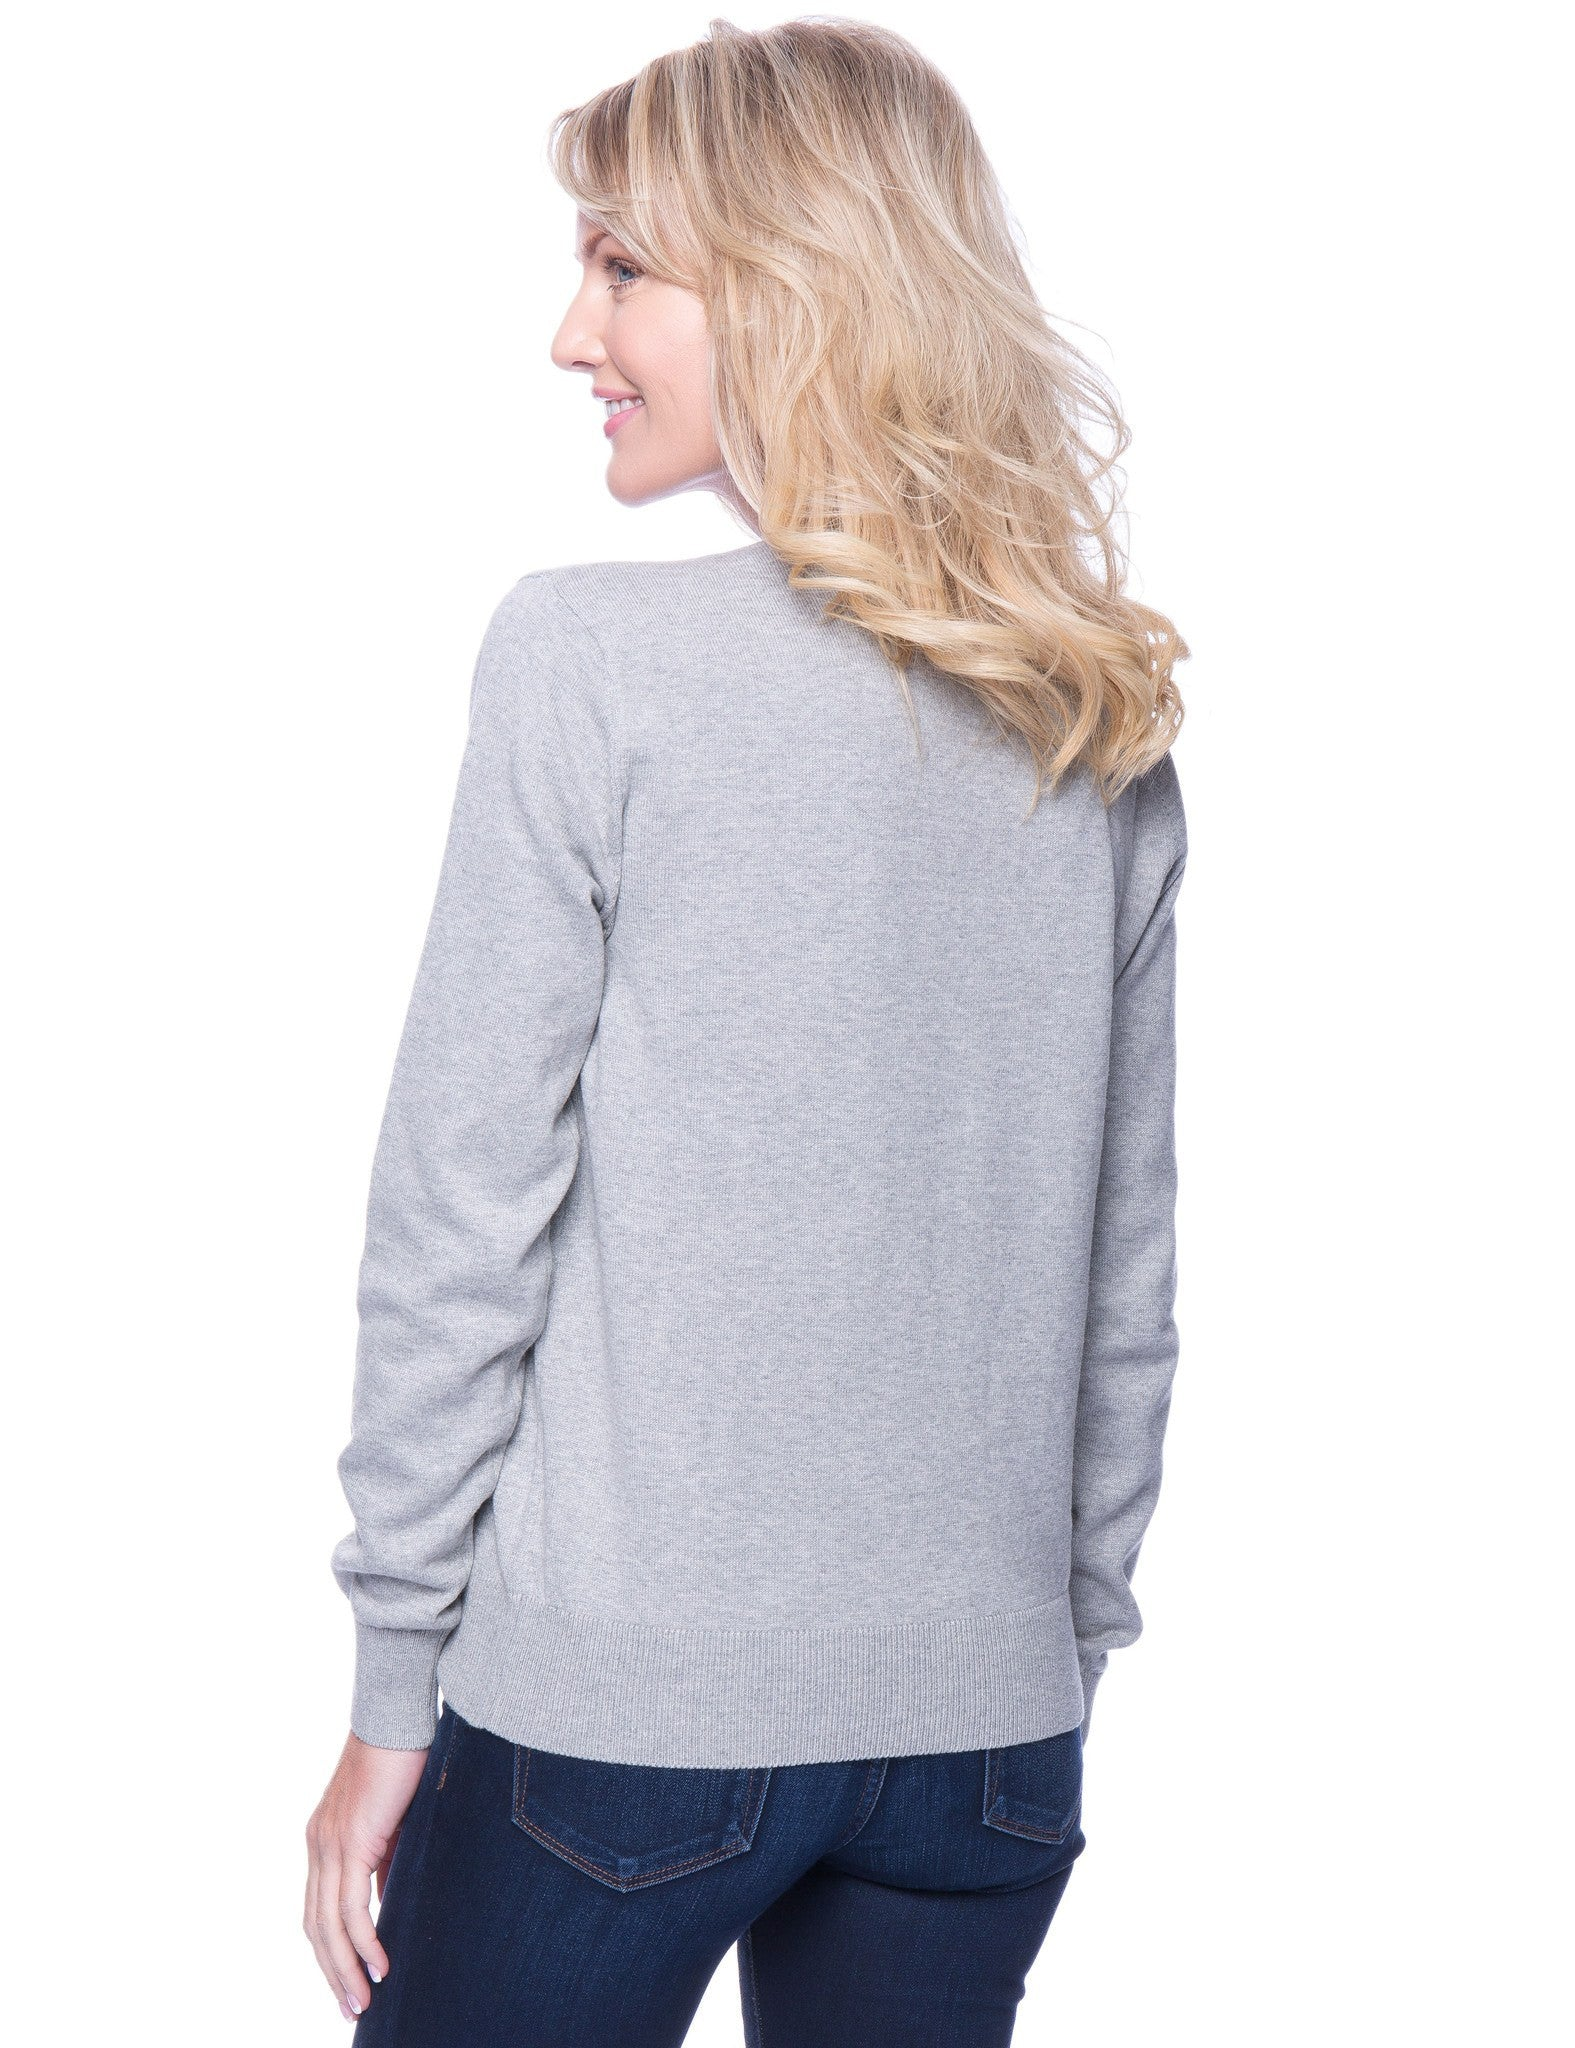 Tocco Reale Women's Premium Cotton Crew Neck Sweater - Heather Grey